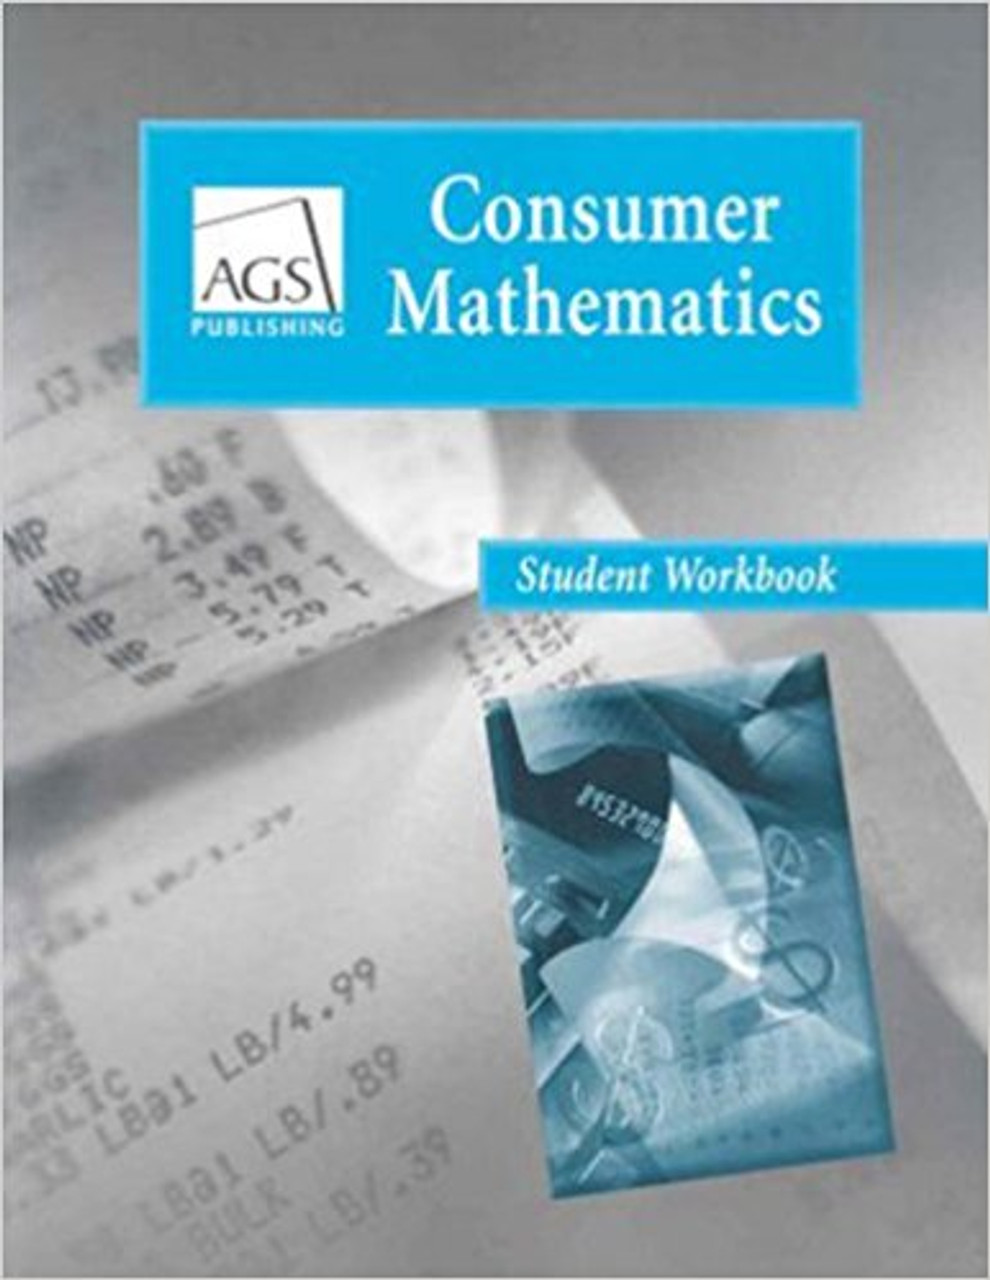 AGS Consumer Math Student Workbook Answer Key - Classroom Resource Center [ 1280 x 990 Pixel ]